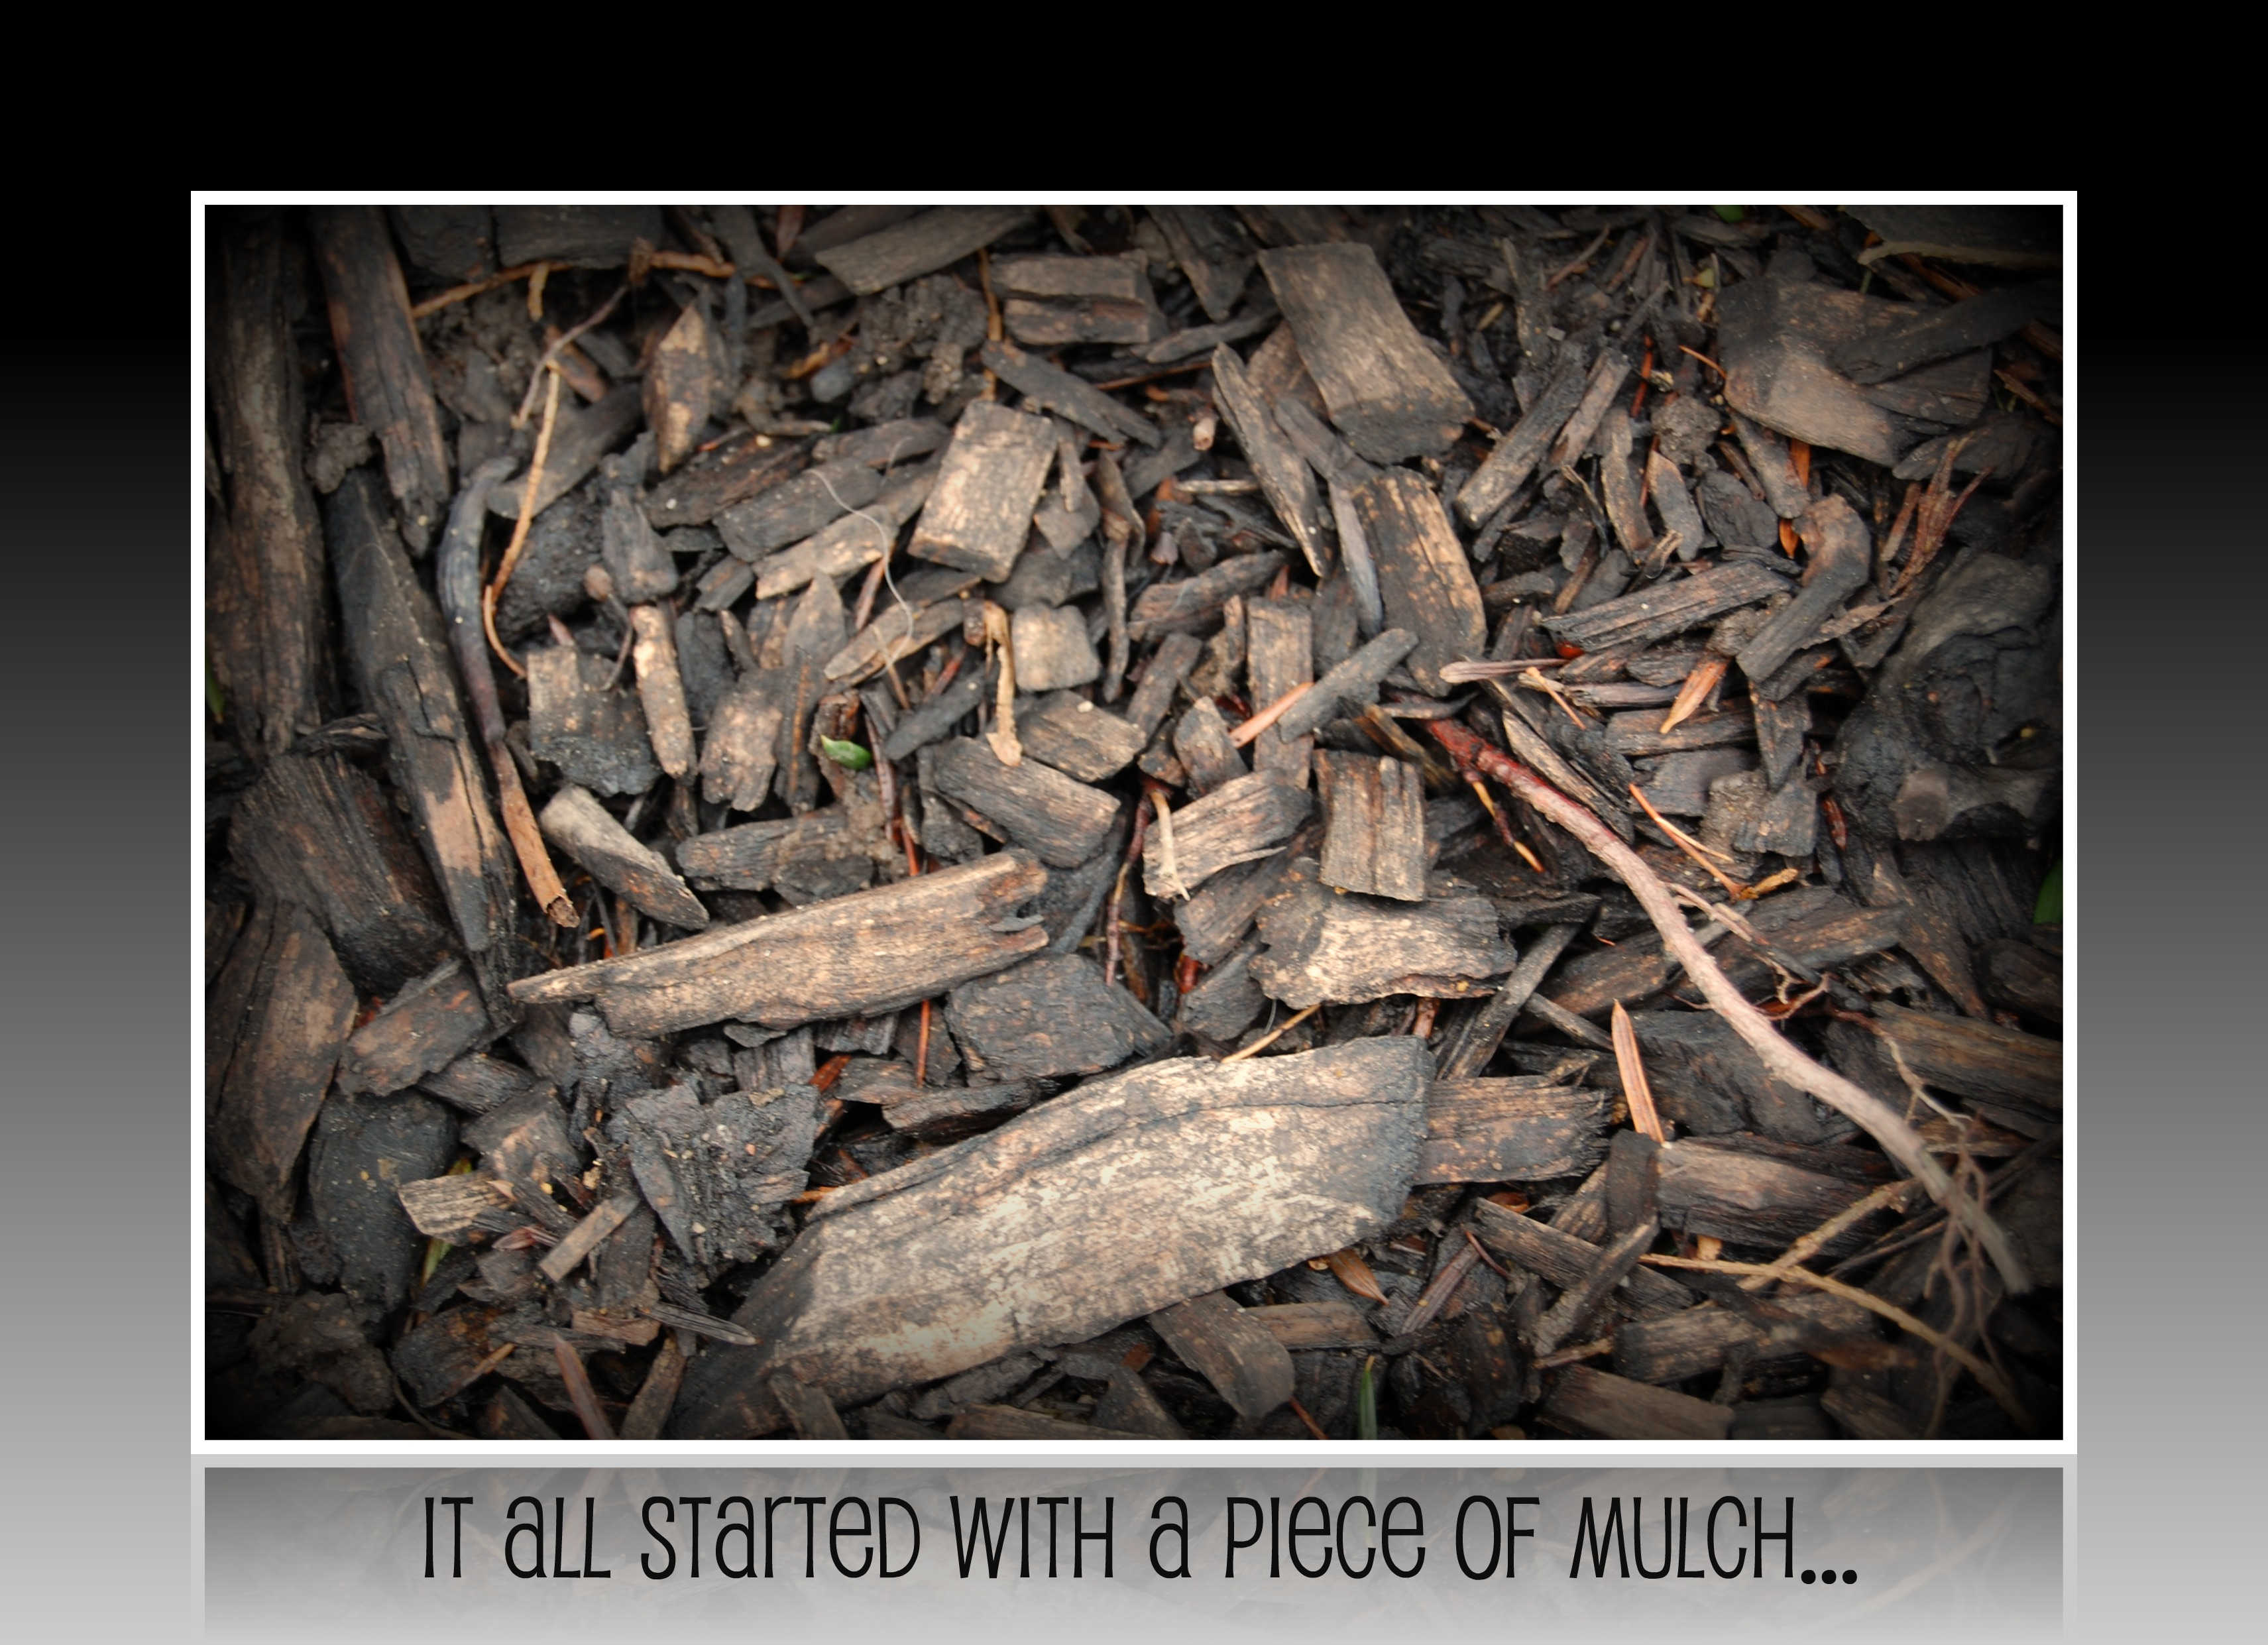 how to stop dog from eating mulch